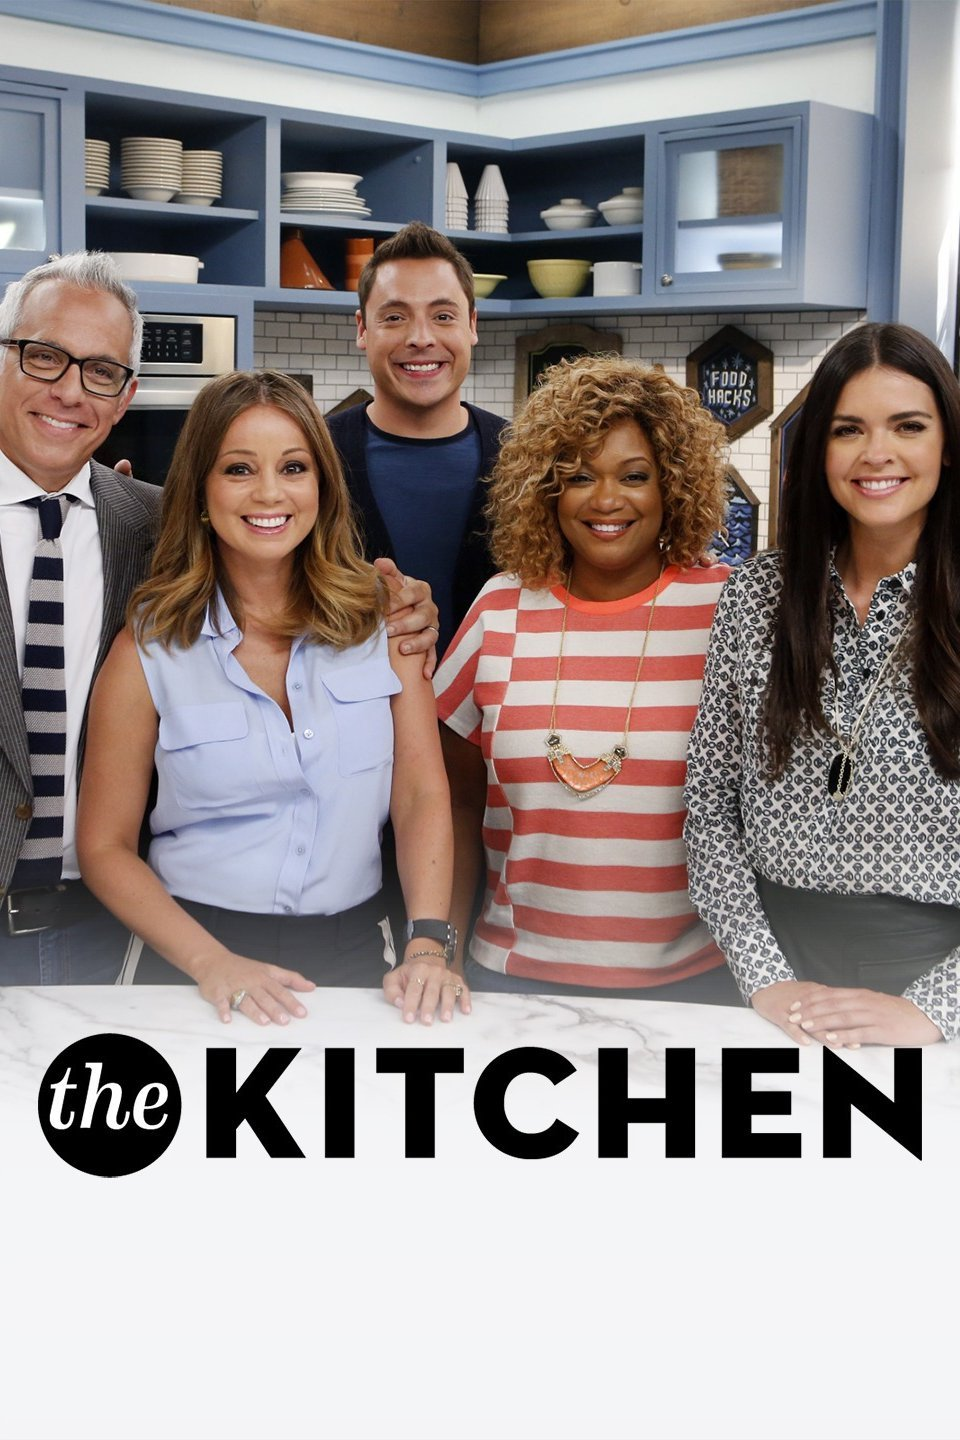 The Kitchen Tv Show The Kitchen Tv Series  Alchetron The Free Social Encyclopedia